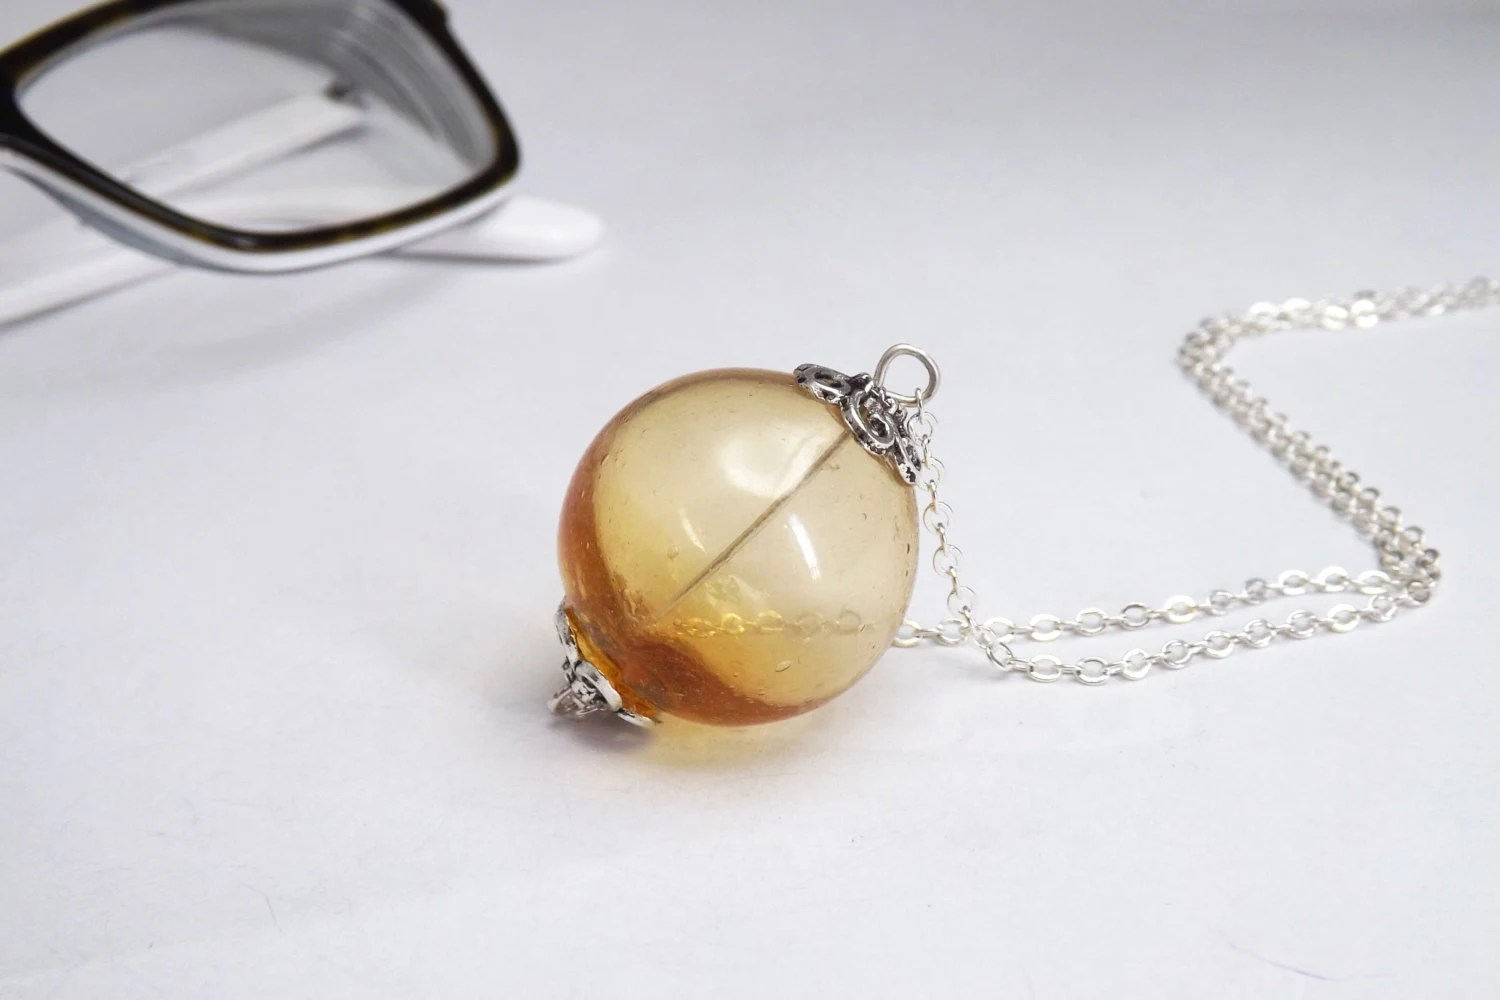 topaz transparent handblown glass pendant necklace - amabito